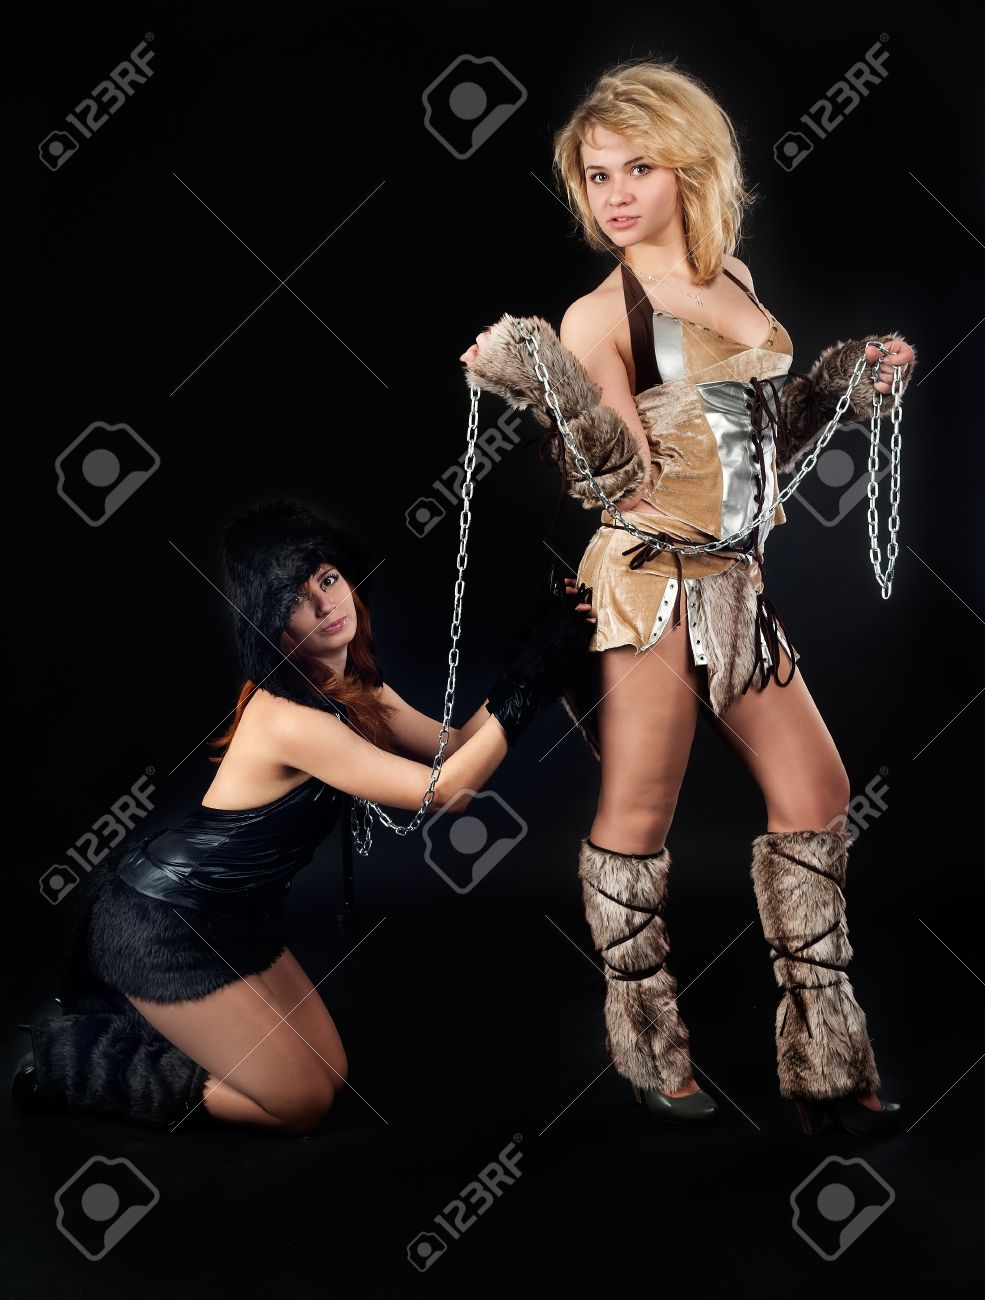 eoung beautiful women in barbarian and cat costumes on black background Stock Photo - 22109367  sc 1 st  123RF.com & Eoung Beautiful Women In Barbarian And Cat Costumes On Black.. Stock ...